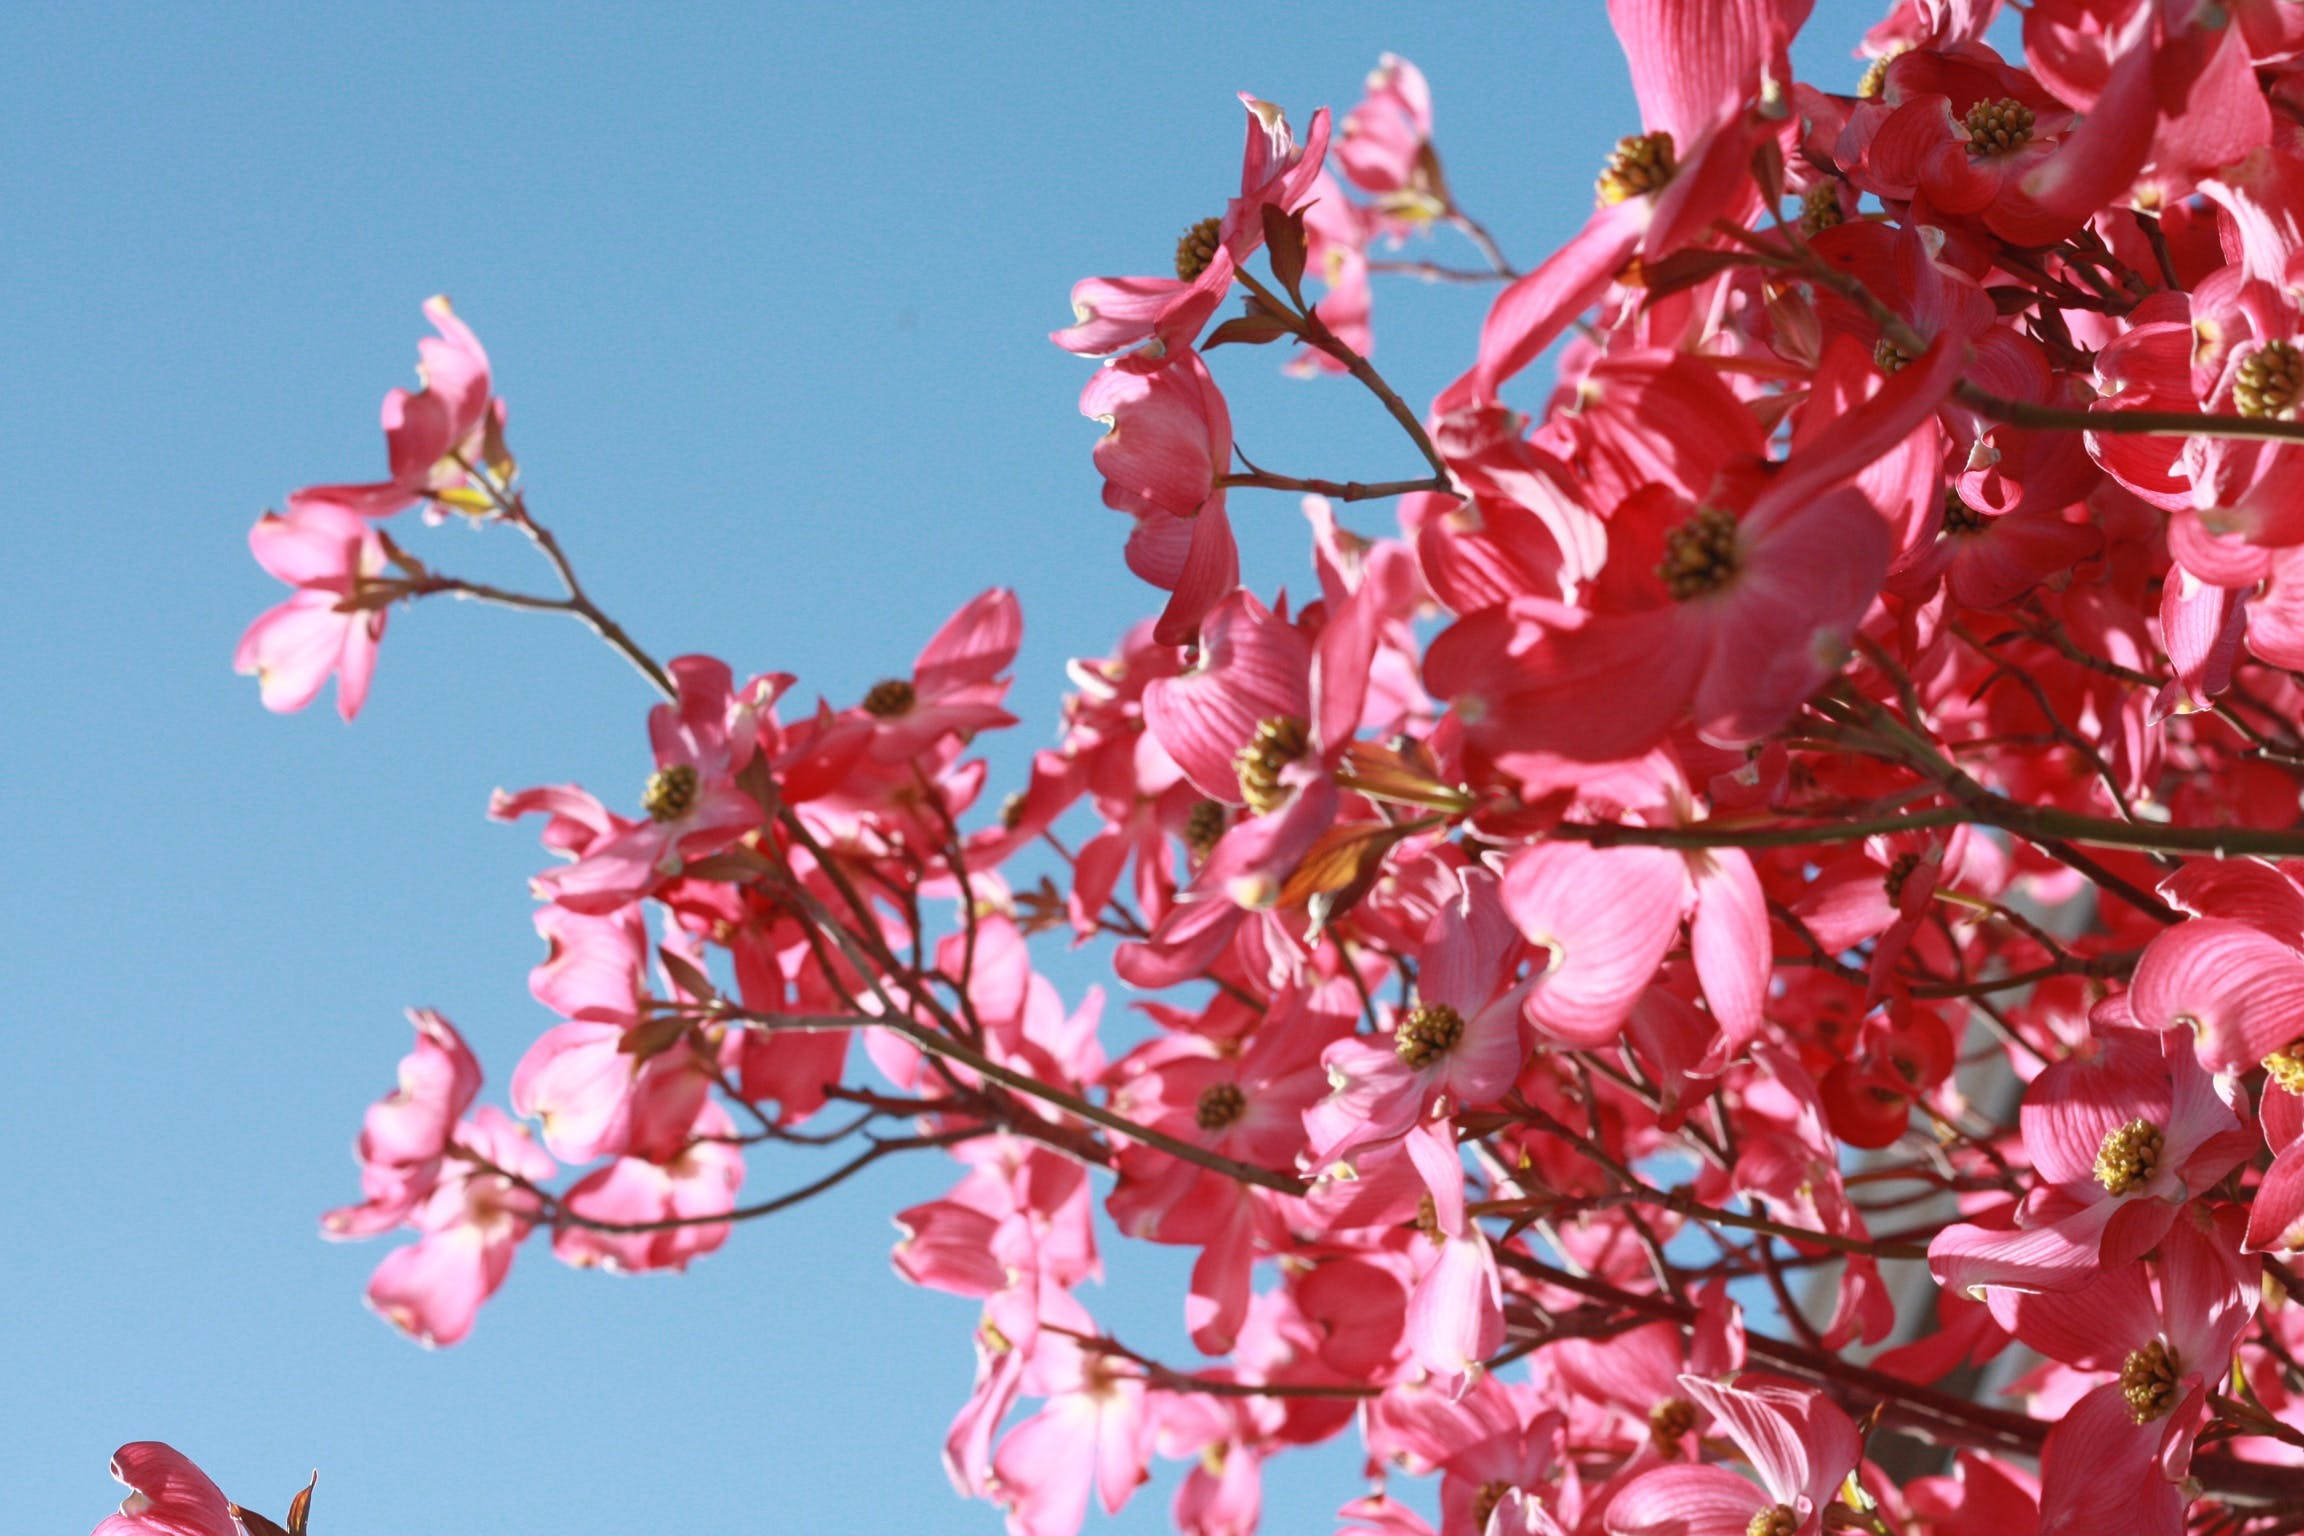 Pink Flowers Under Blue Clear Sky